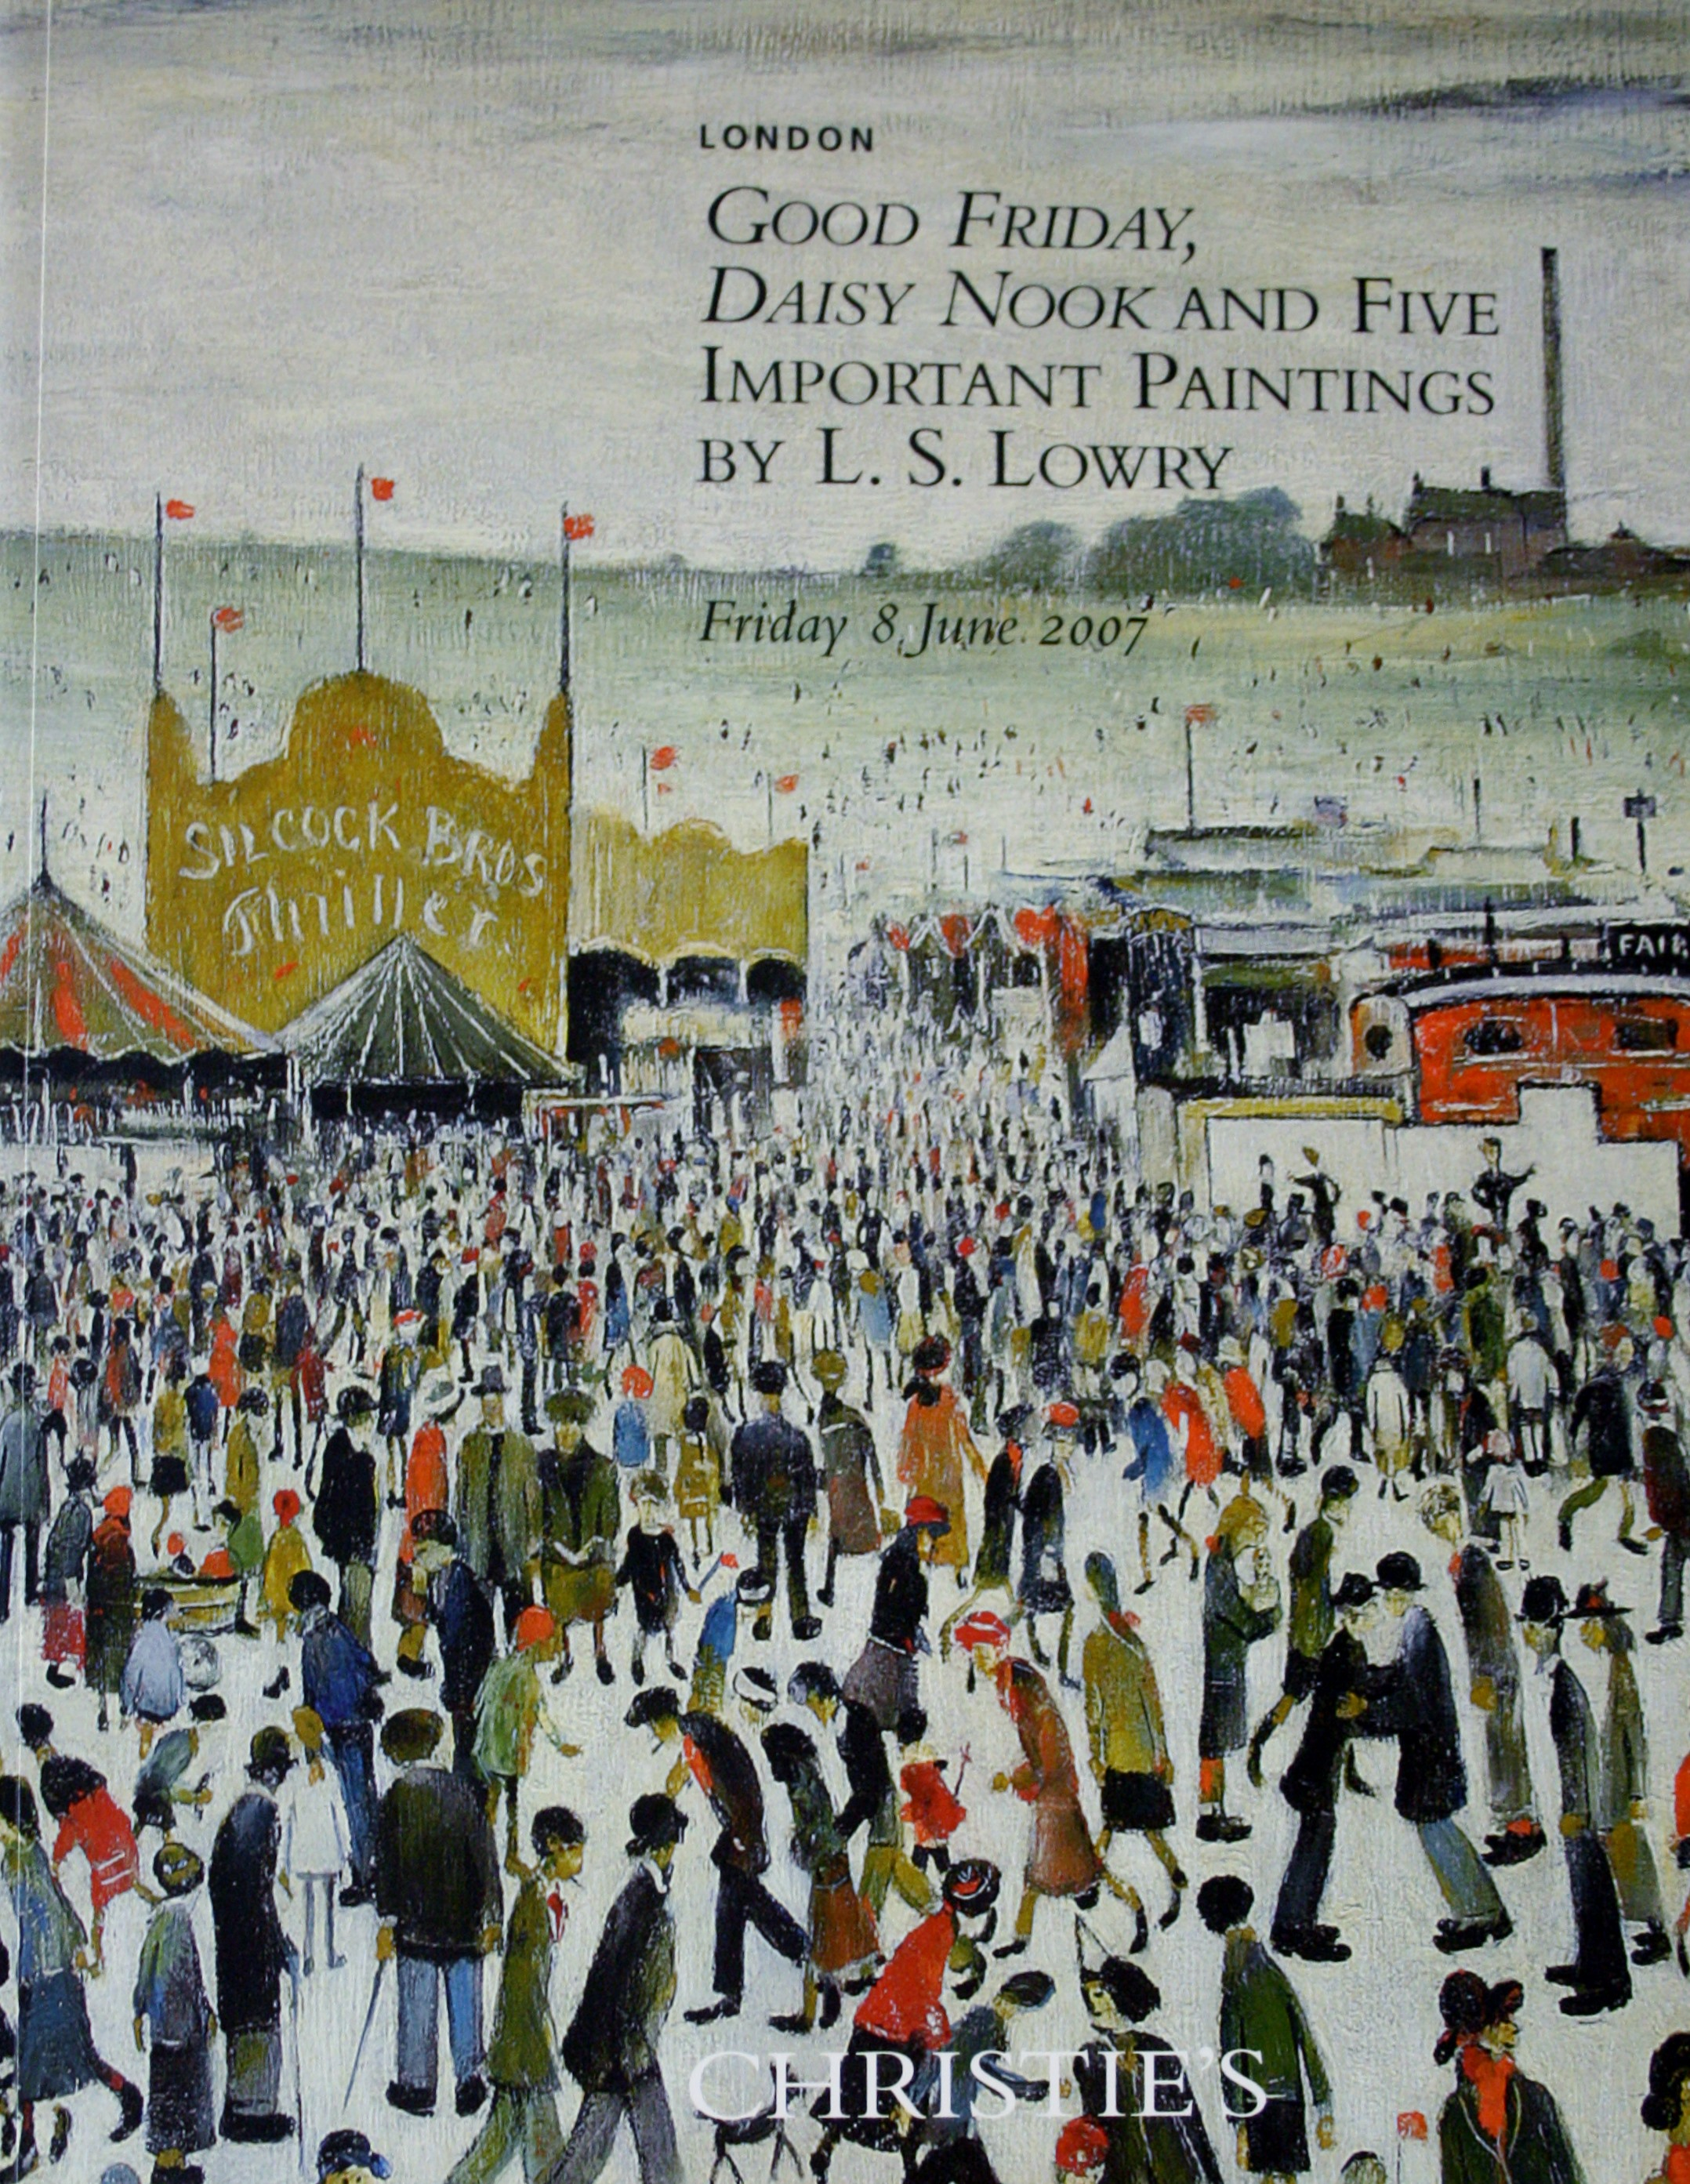 Good Friday, Daisy Nook and Five important Paintings